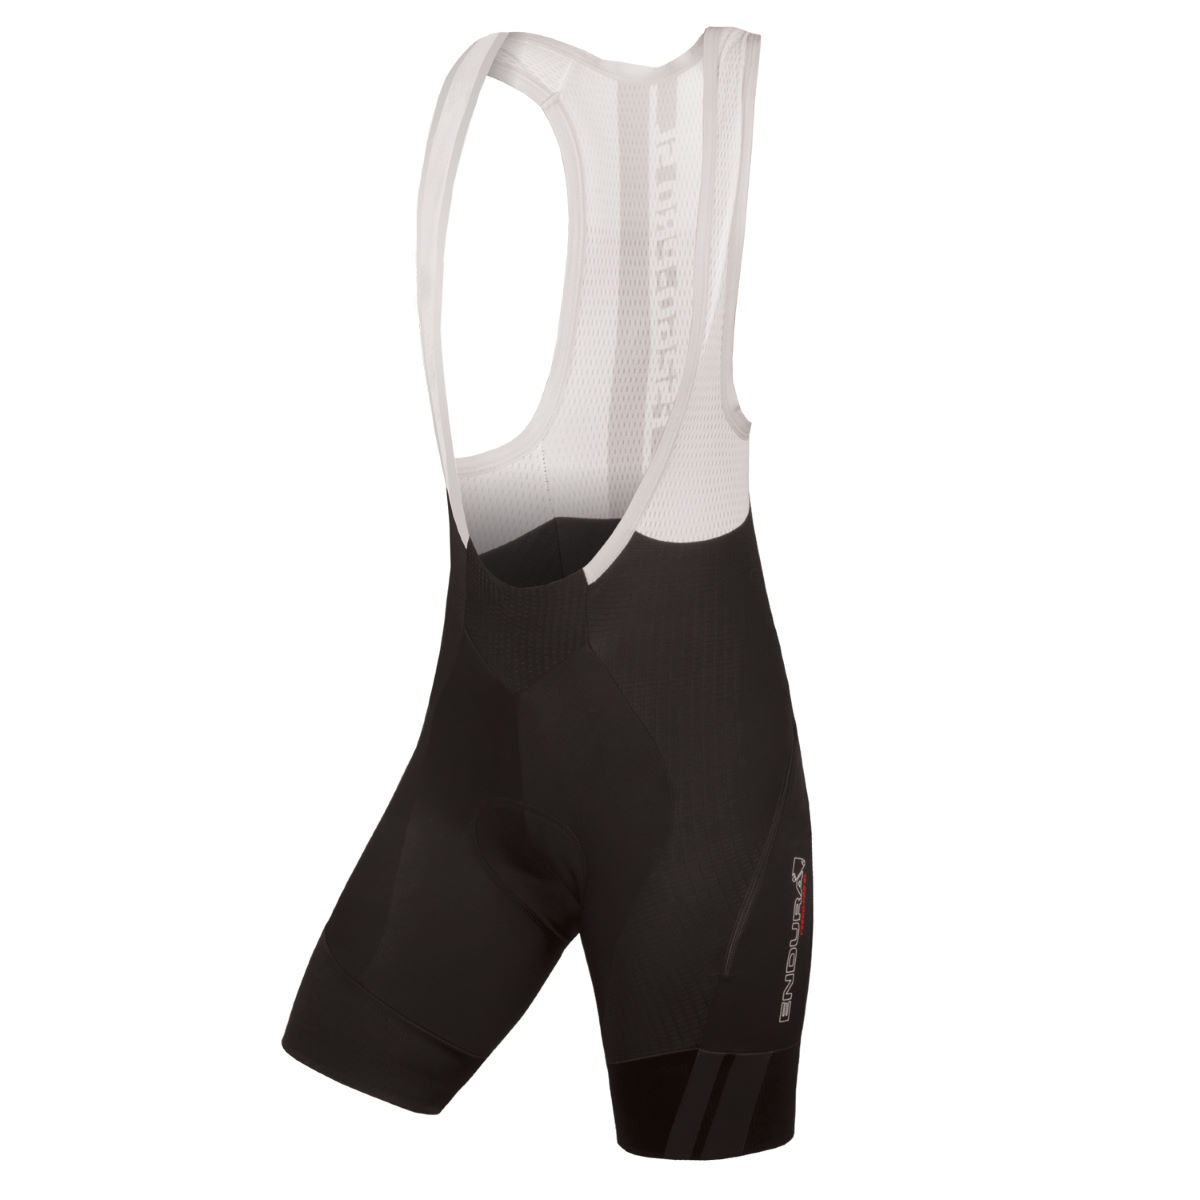 Endura Women's FS260 Pro SL DS Bib Shorts (Wide Pad) - X Small Black